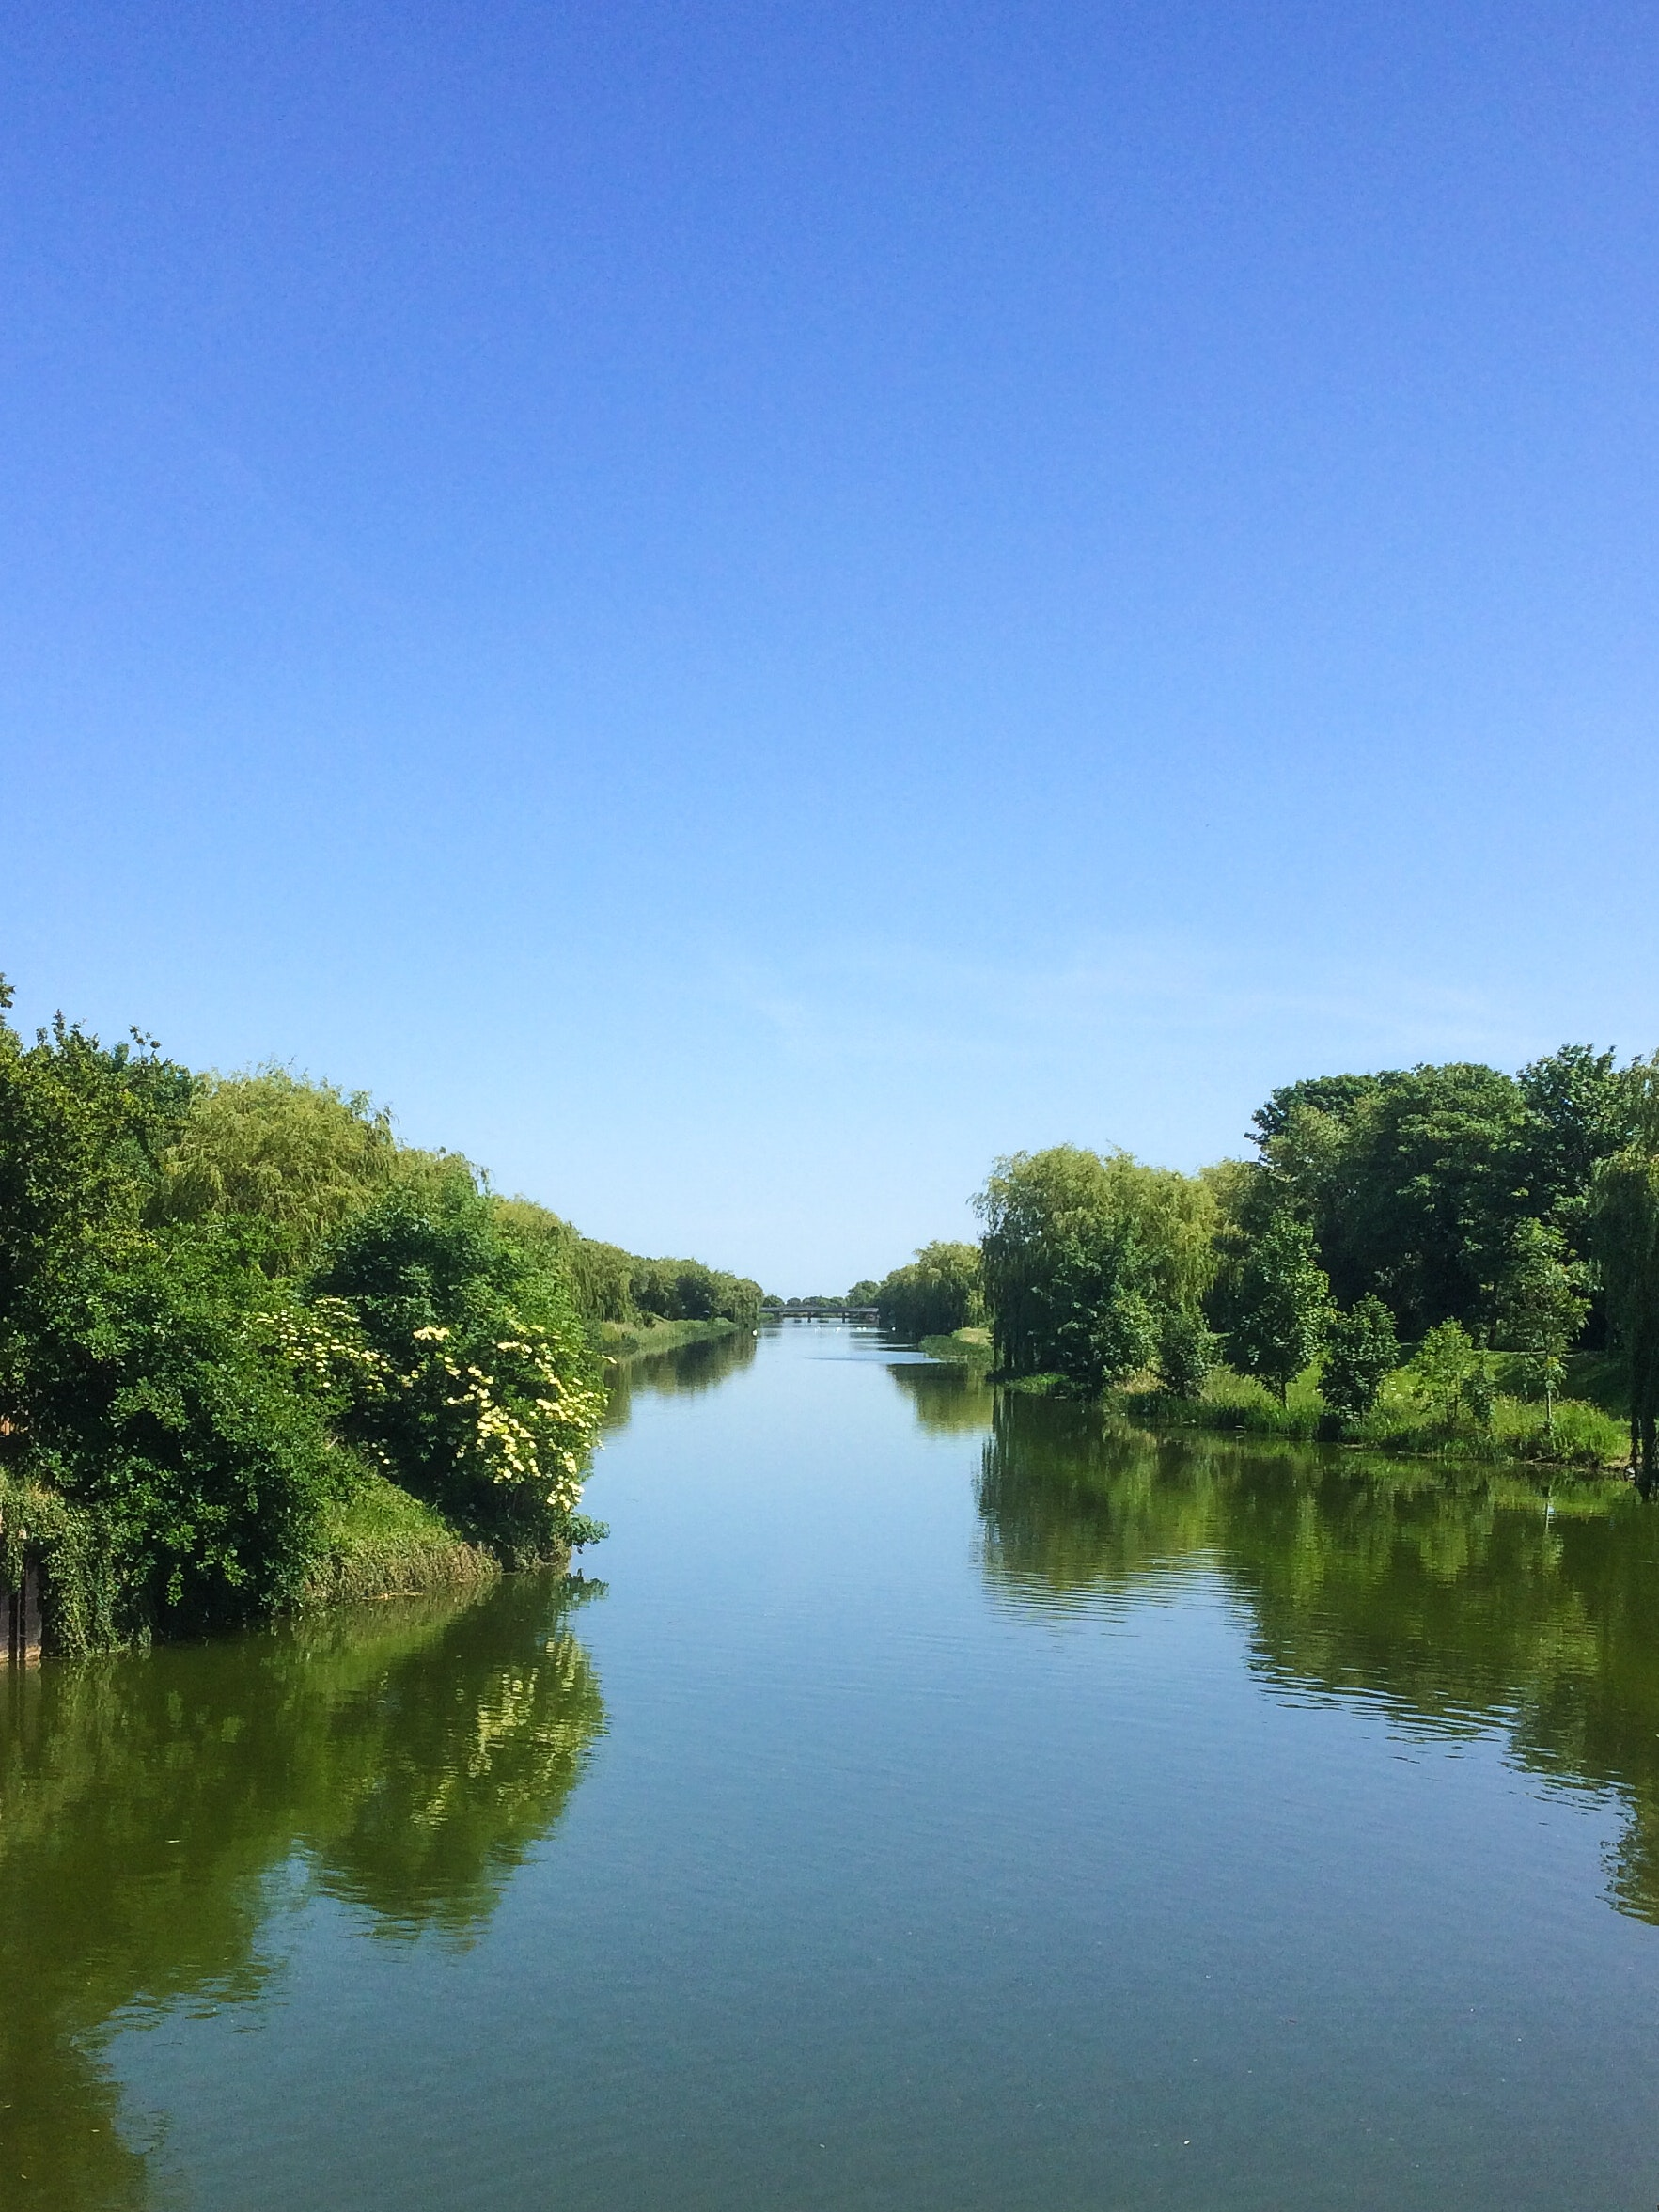 water-trees-green-blue-sky-4507089